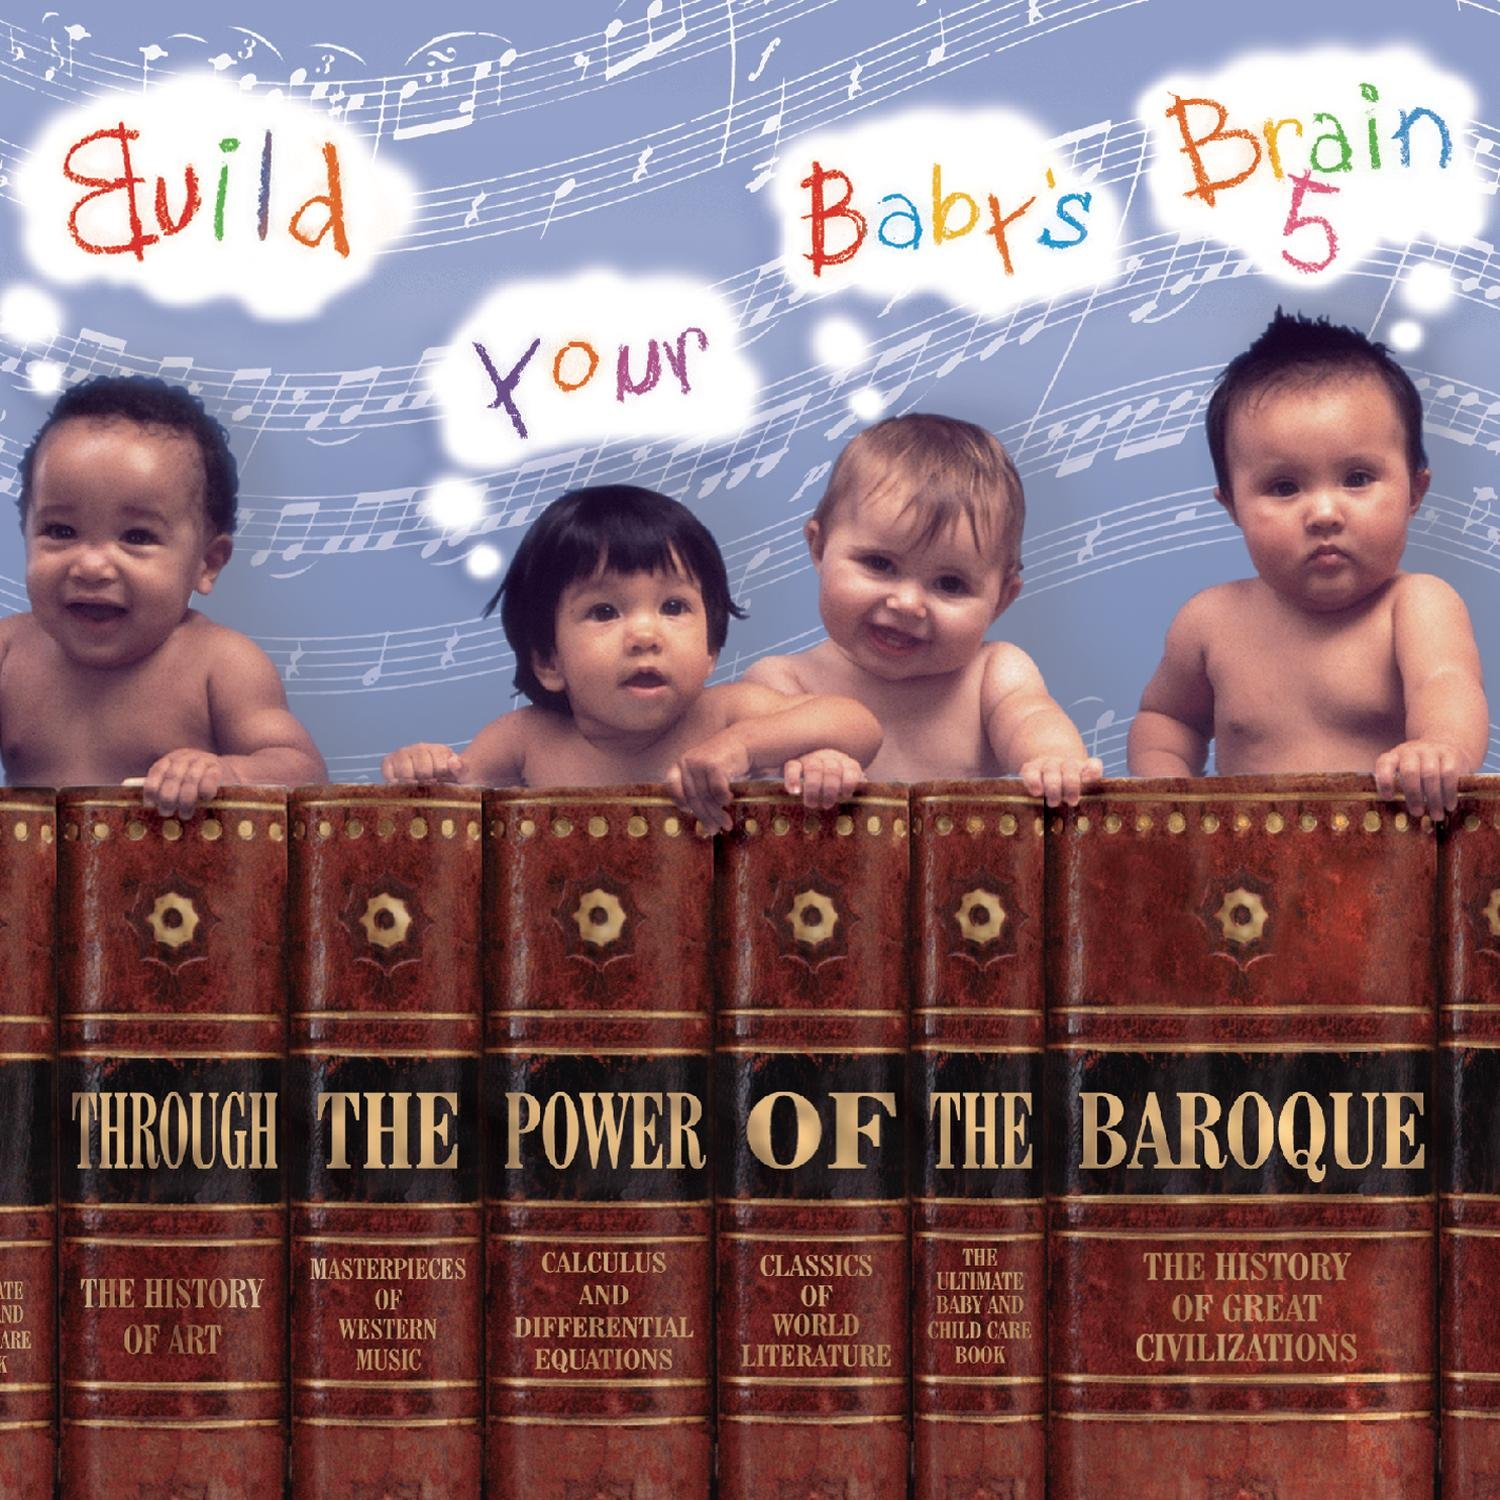 Build Your Baby's Brain 5: Through the Power of Baroque by Sony Classical